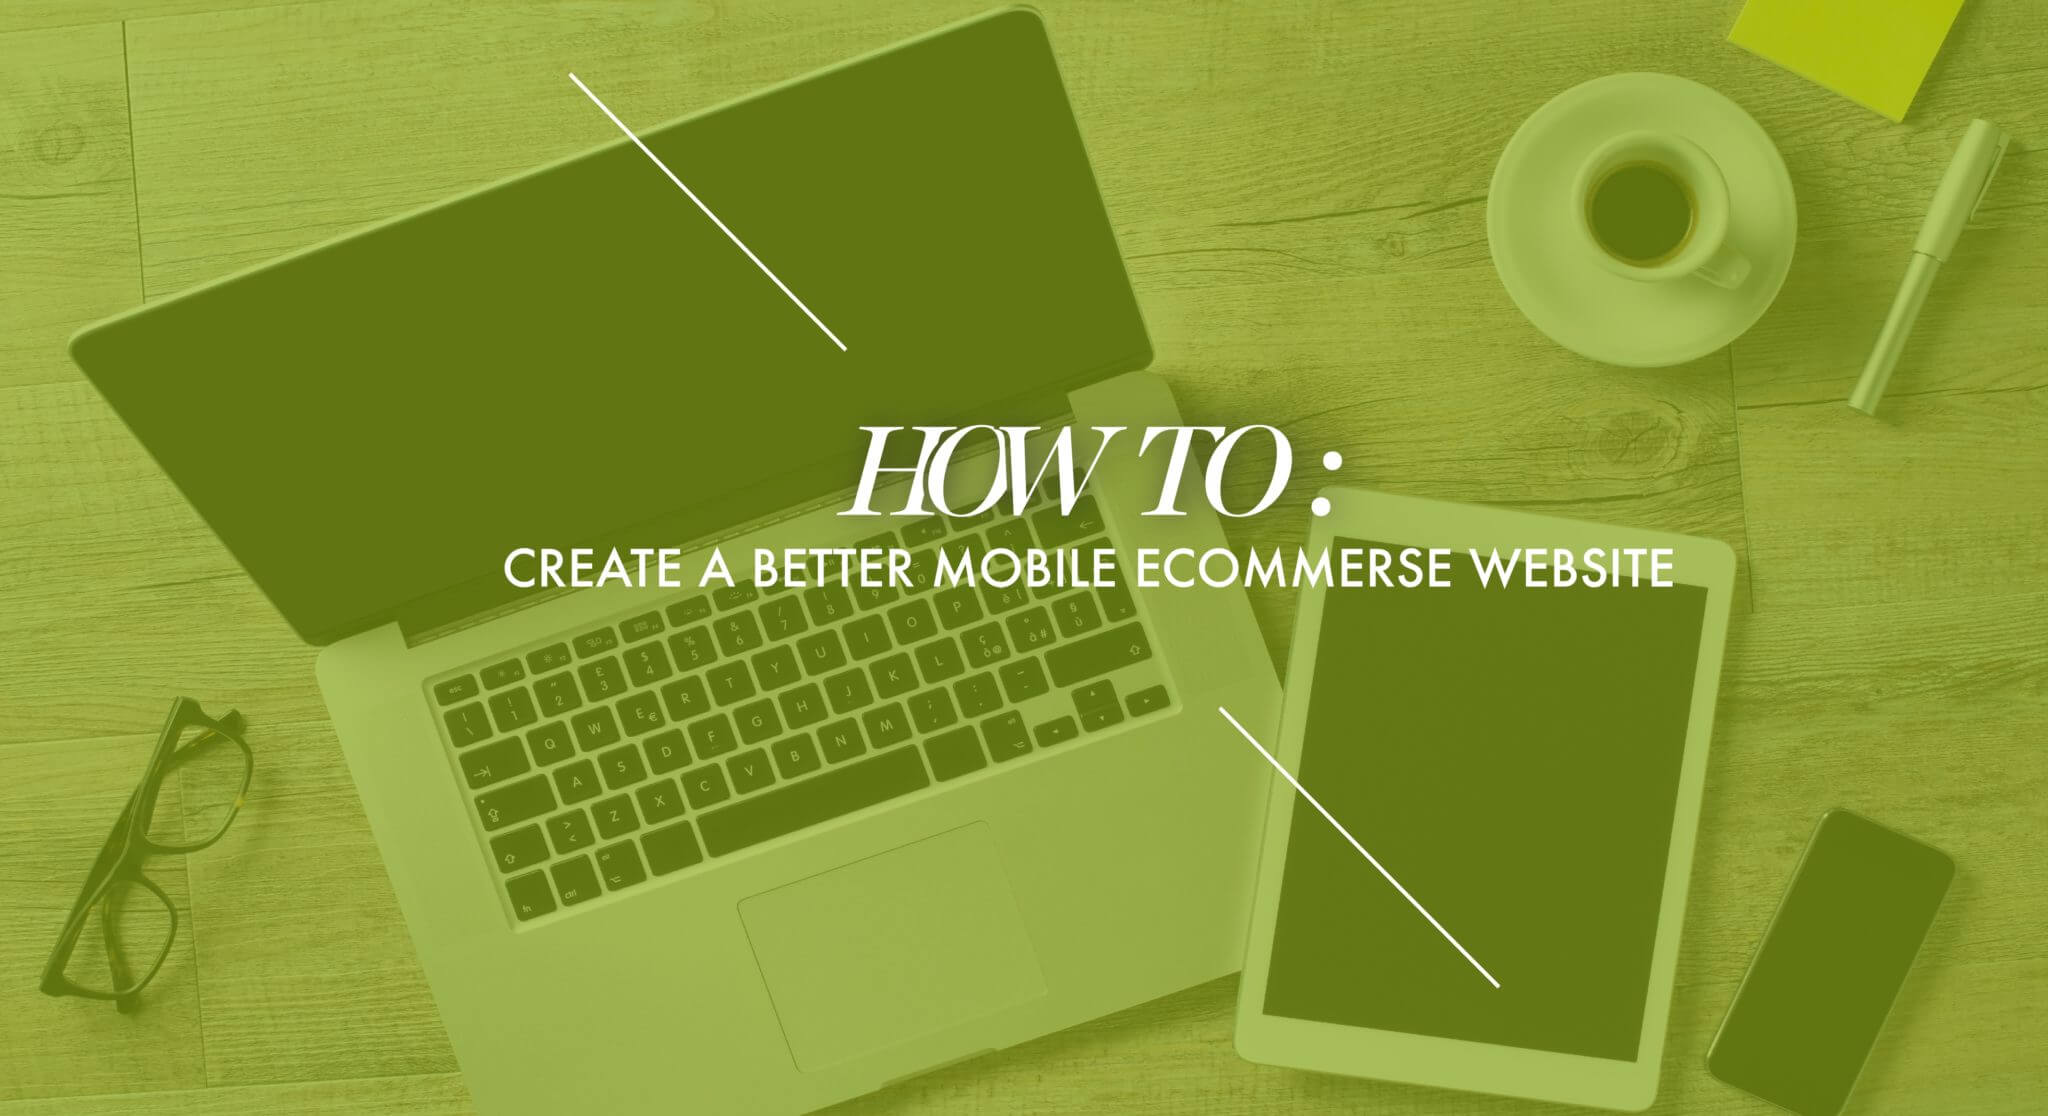 How to Create a Better Mobile Ecommerce Website